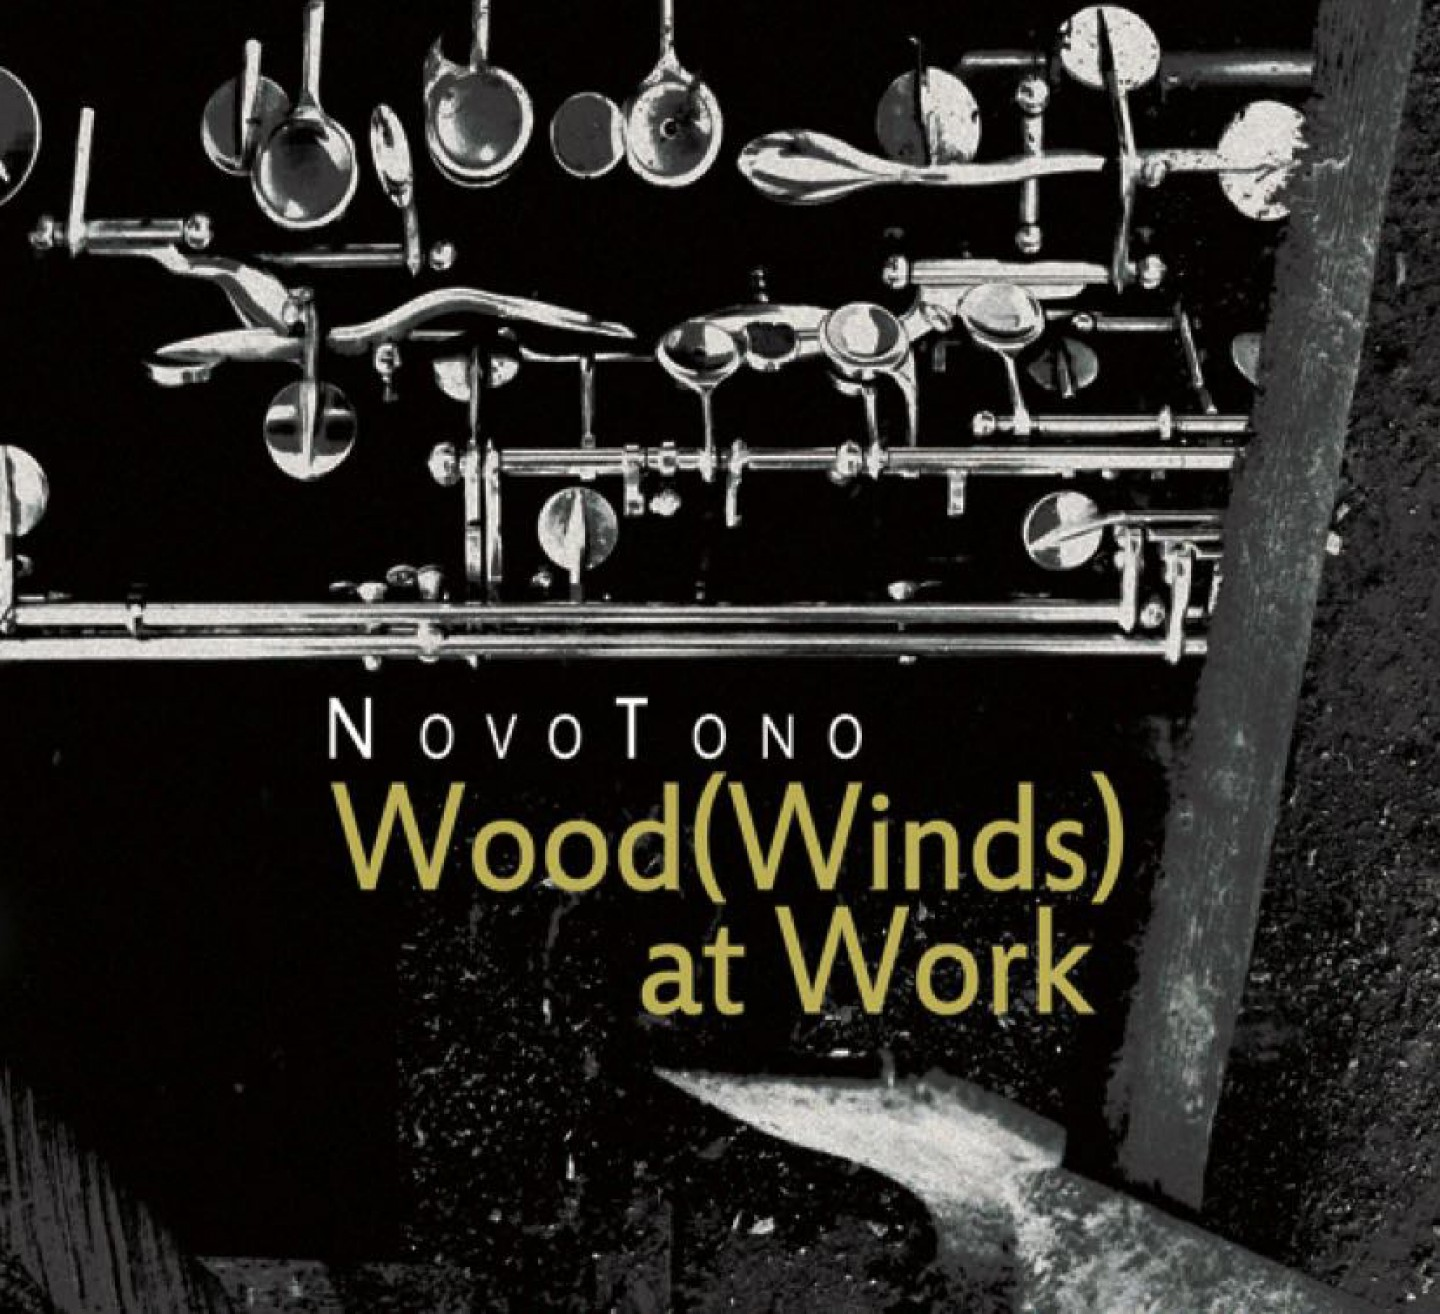 WOOD(WINDS)_AT_WORK_cover